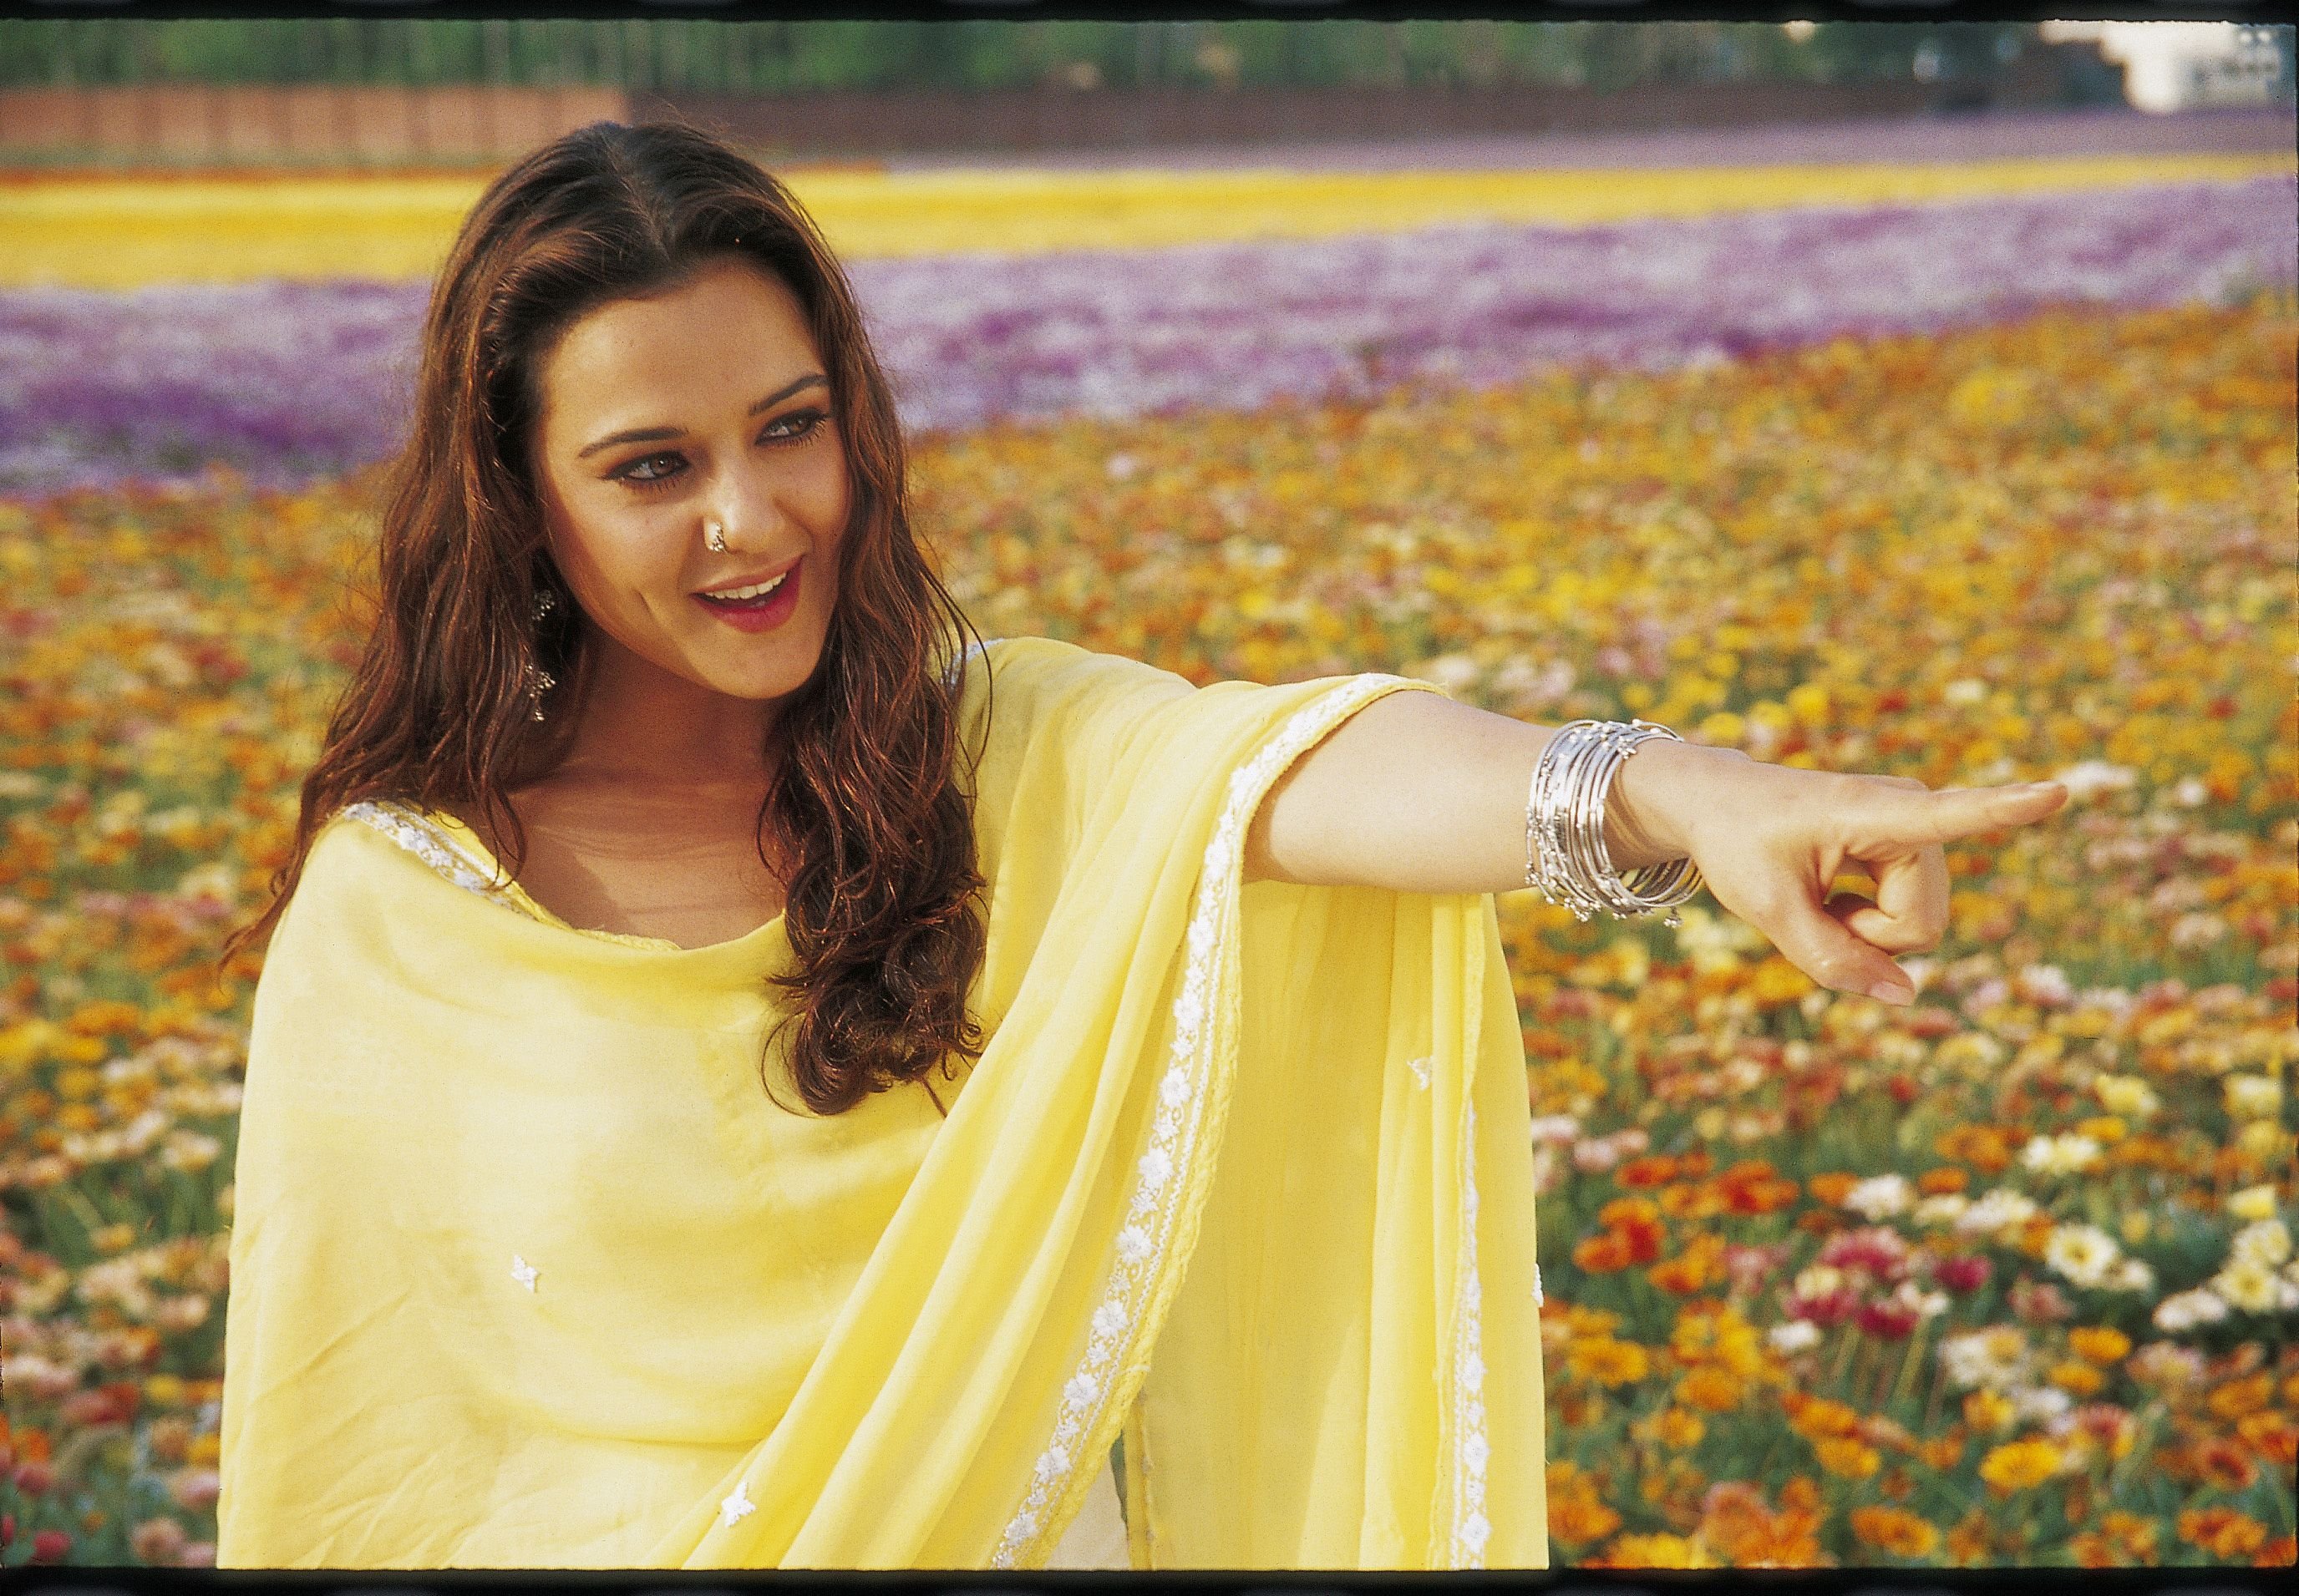 Veer Zaara 3 This Movie Also Love Preity Zinta S Hair And Nose Rings In This Movie Haha Pretty Zinta Beautiful Indian Actress Bollywood Images